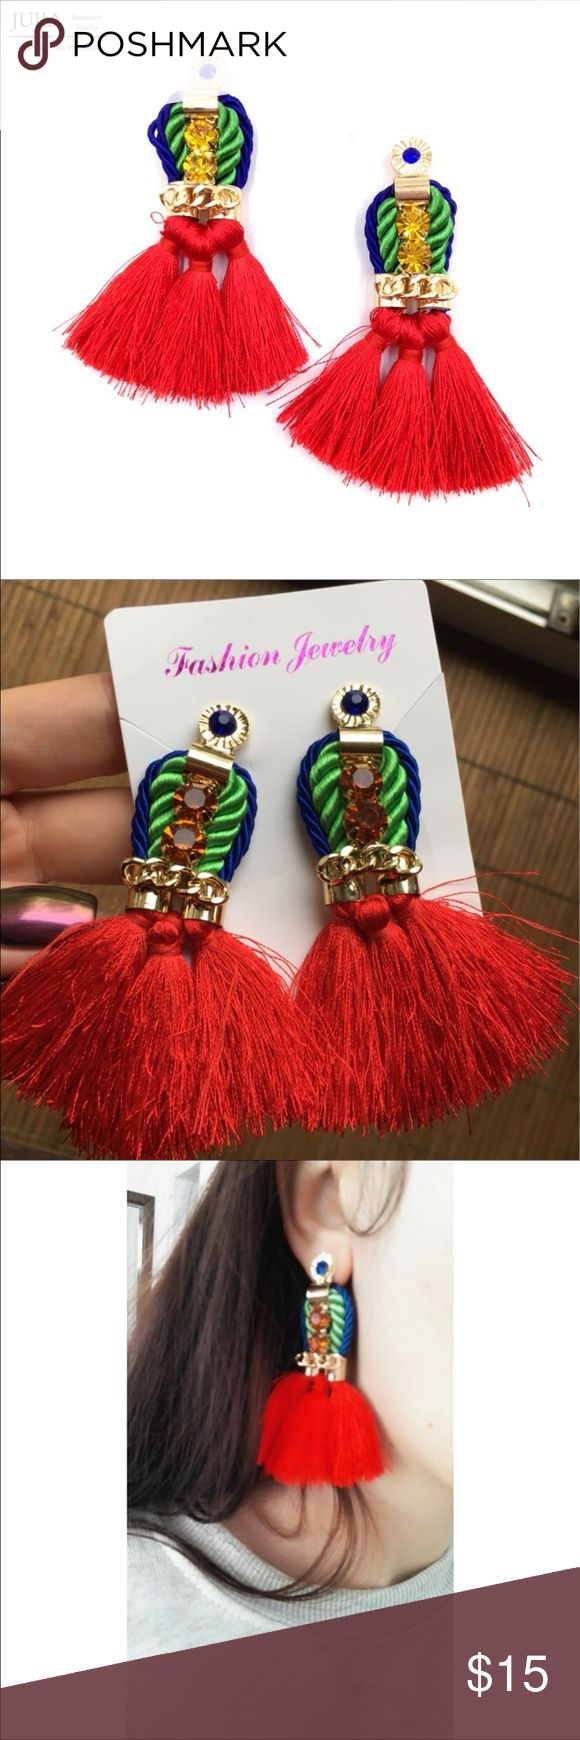 💃🏻🌴BEAUTIFUL RED TASSEL EARRINGS💃🏻🌴 Gorgeous multi color red tassel festival earrings. Never worn. NWT. BRAND NEW! KEPT IN A SMOKE AND PET FREE ENVIRONMENT!💕♥️ Macy's Jewelry Earrings